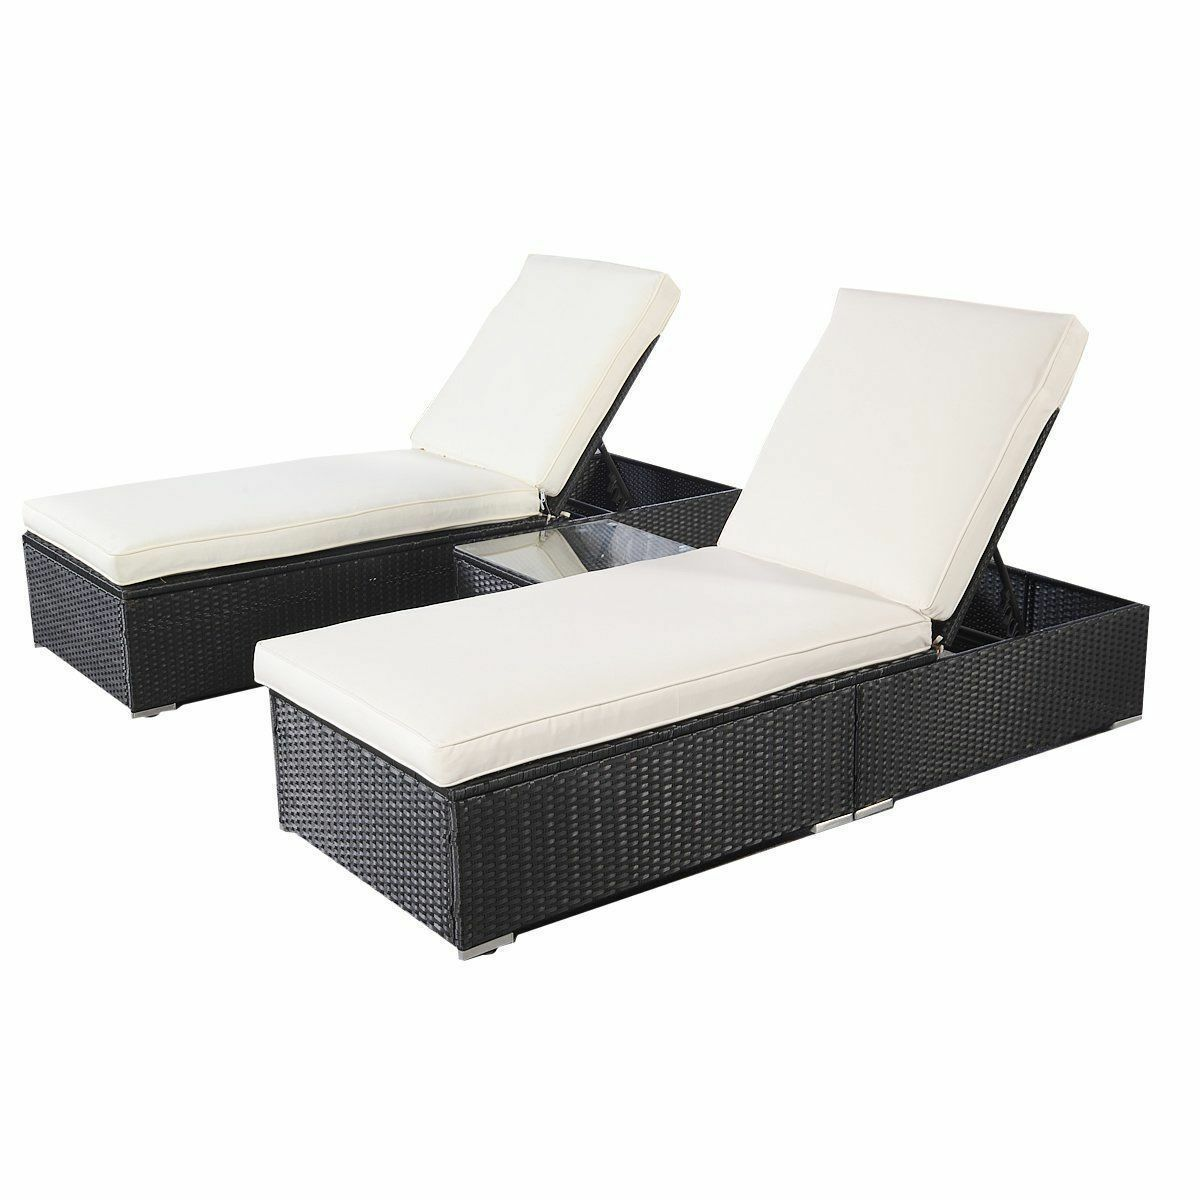 Rattan Chaise Lounge Sofa Wicker Rattan Lounge Sofa Chaise Chair Bed Set Patio